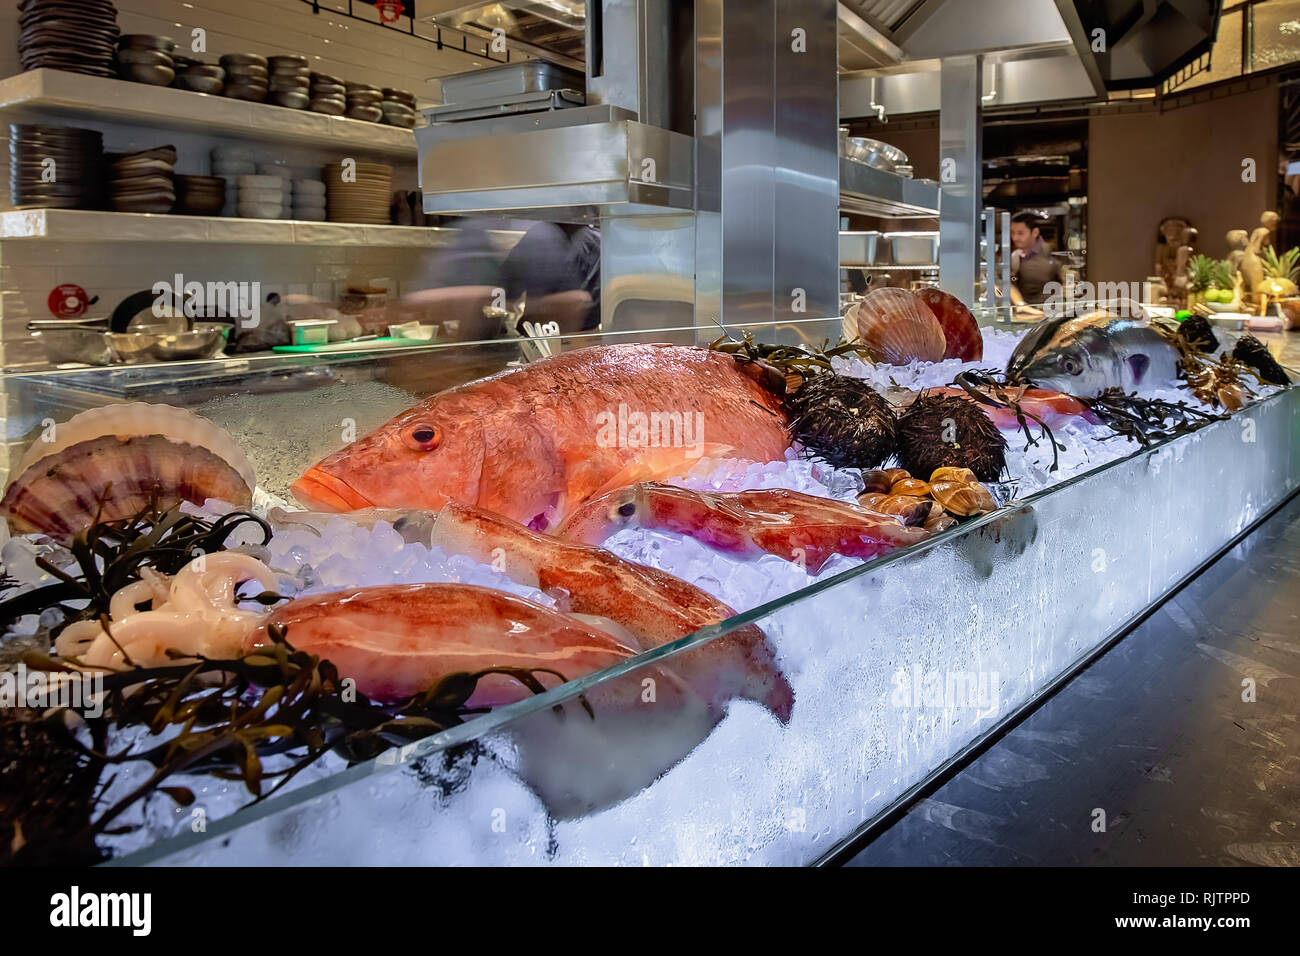 Fresh fish and seafood selection over crushed ice - Stock Image